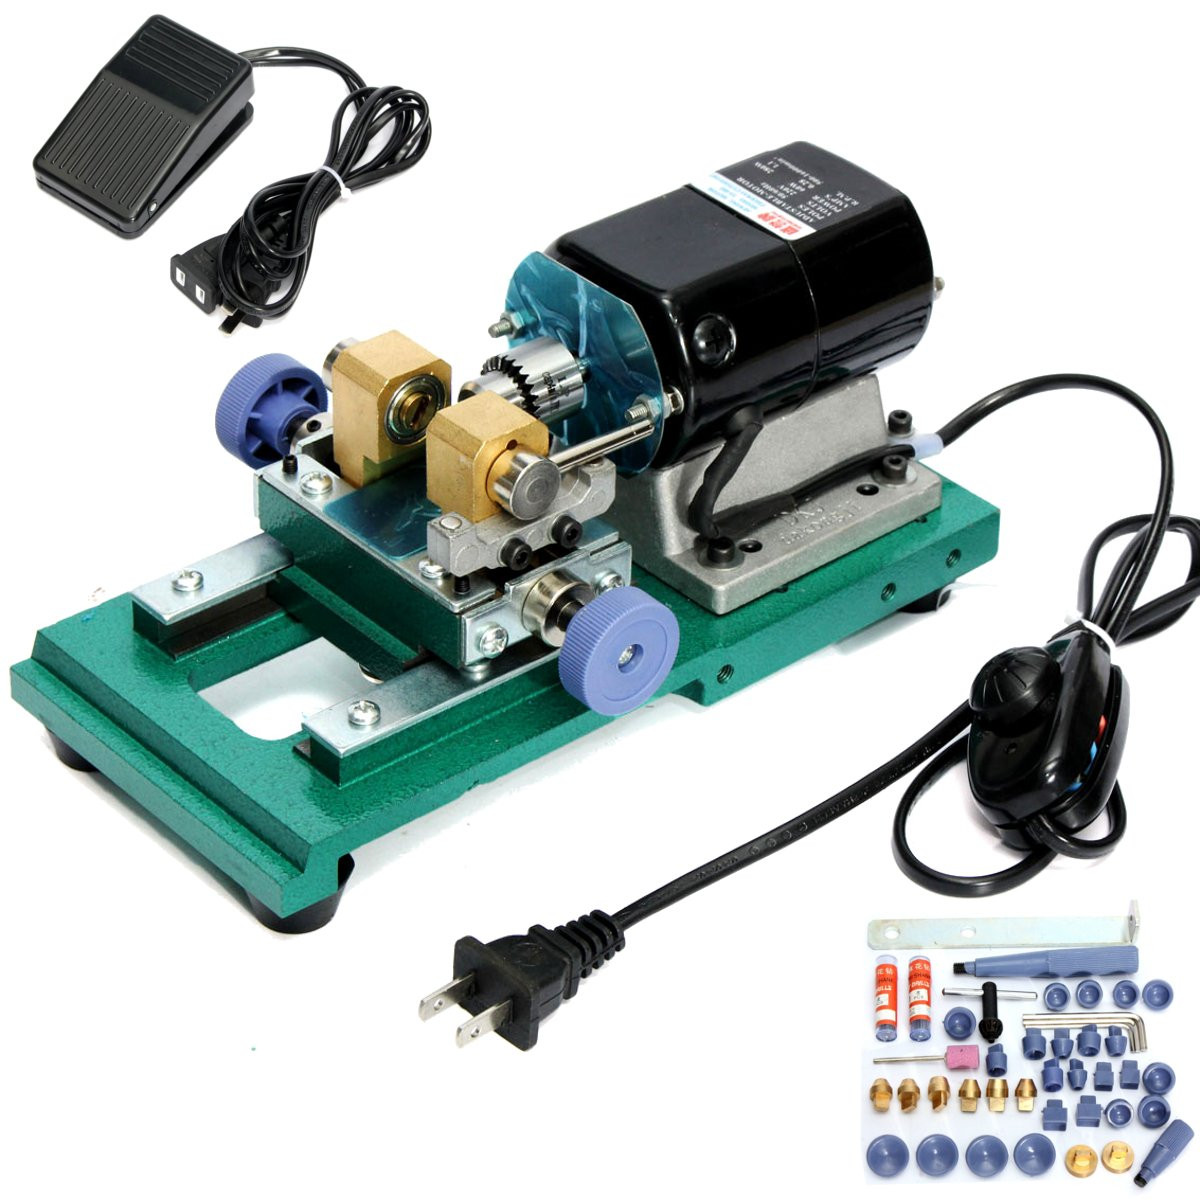 1 Set Pearl Drilling Holing Machine Driller Bead Jewelry Punch Engraving Engraver Machine Tools 280W 220V 60Hz1 Set Pearl Drilling Holing Machine Driller Bead Jewelry Punch Engraving Engraver Machine Tools 280W 220V 60Hz